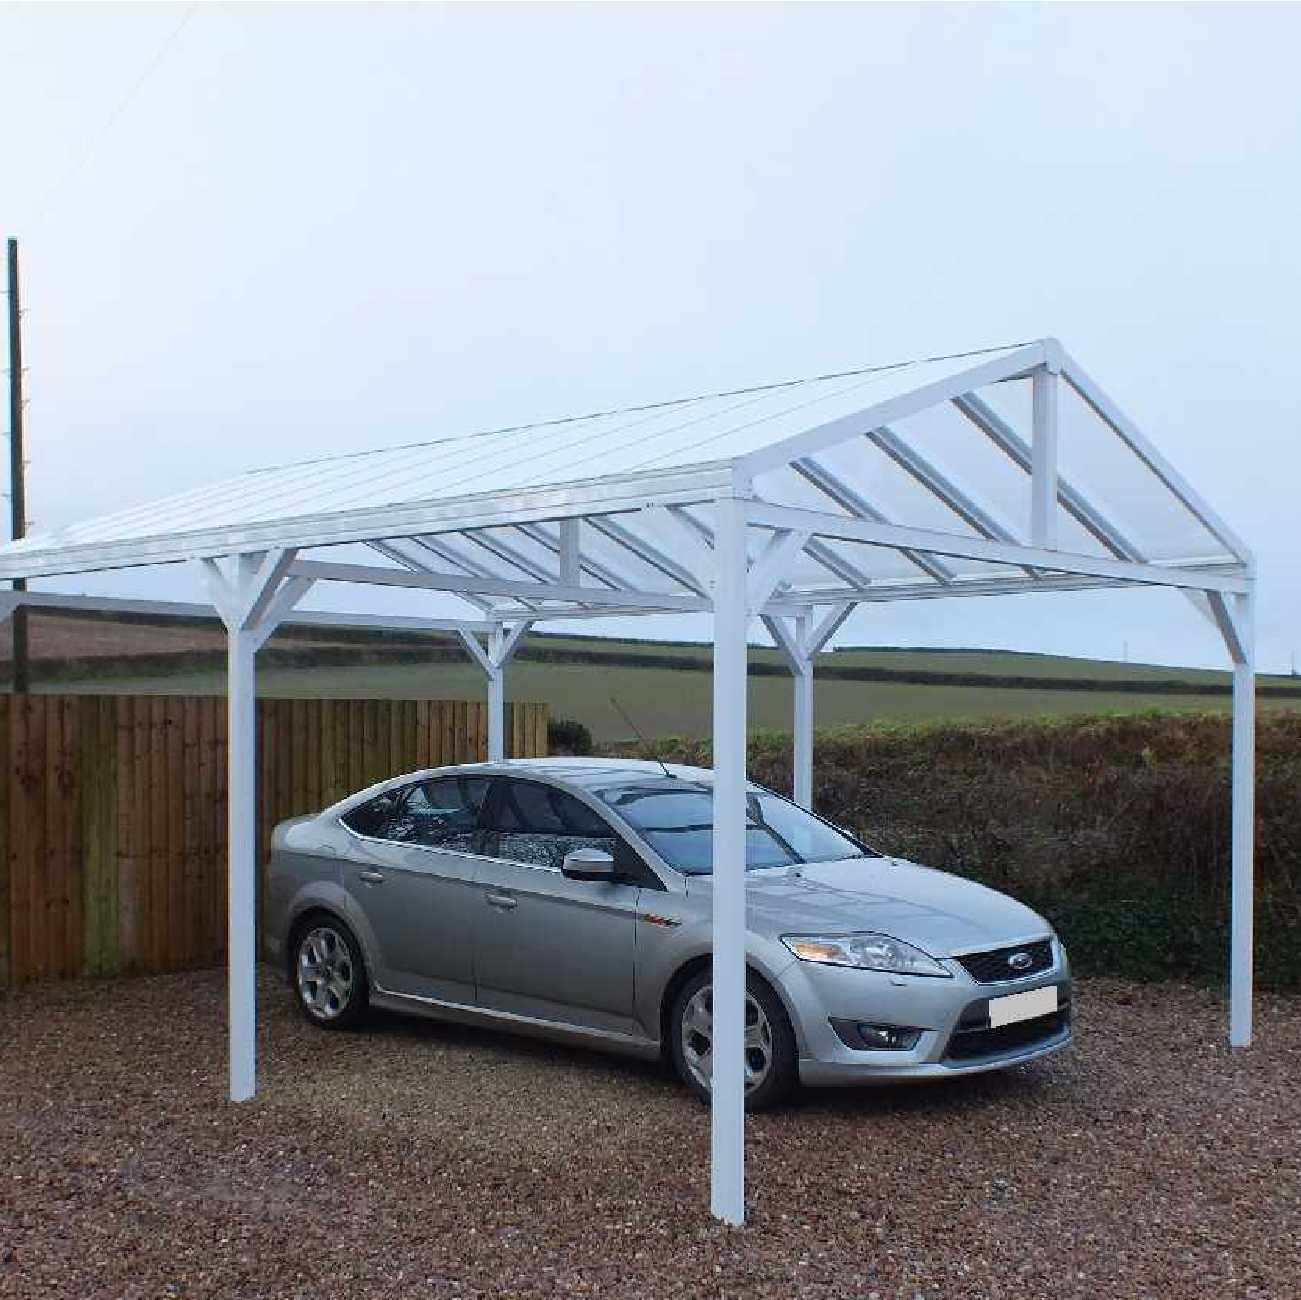 Affordable Omega Smart Free-Standing, Gable-Roof (type 1) Canopy with 16mm Polycarbonate Glazing - 4.2m (W) x 3.5m (P), (6) Supporting Posts